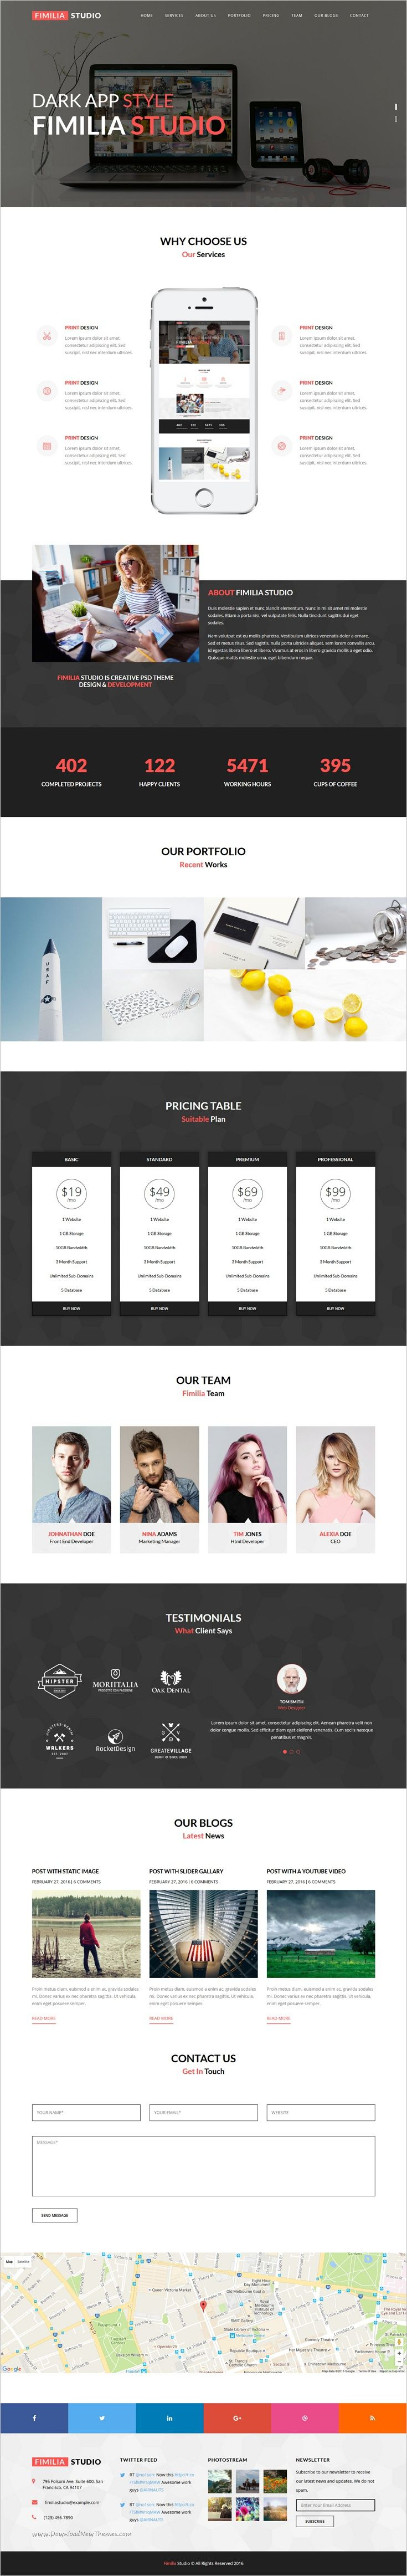 Fimilia Studio is a Modern Multipurpose 8 in 1 #Bootstrap HTML Template for corporate #business or personal #portfolio website download now➩ https://themeforest.net/item/fimilia-studio-html5-landing-page-template/18599516?ref=Datasata